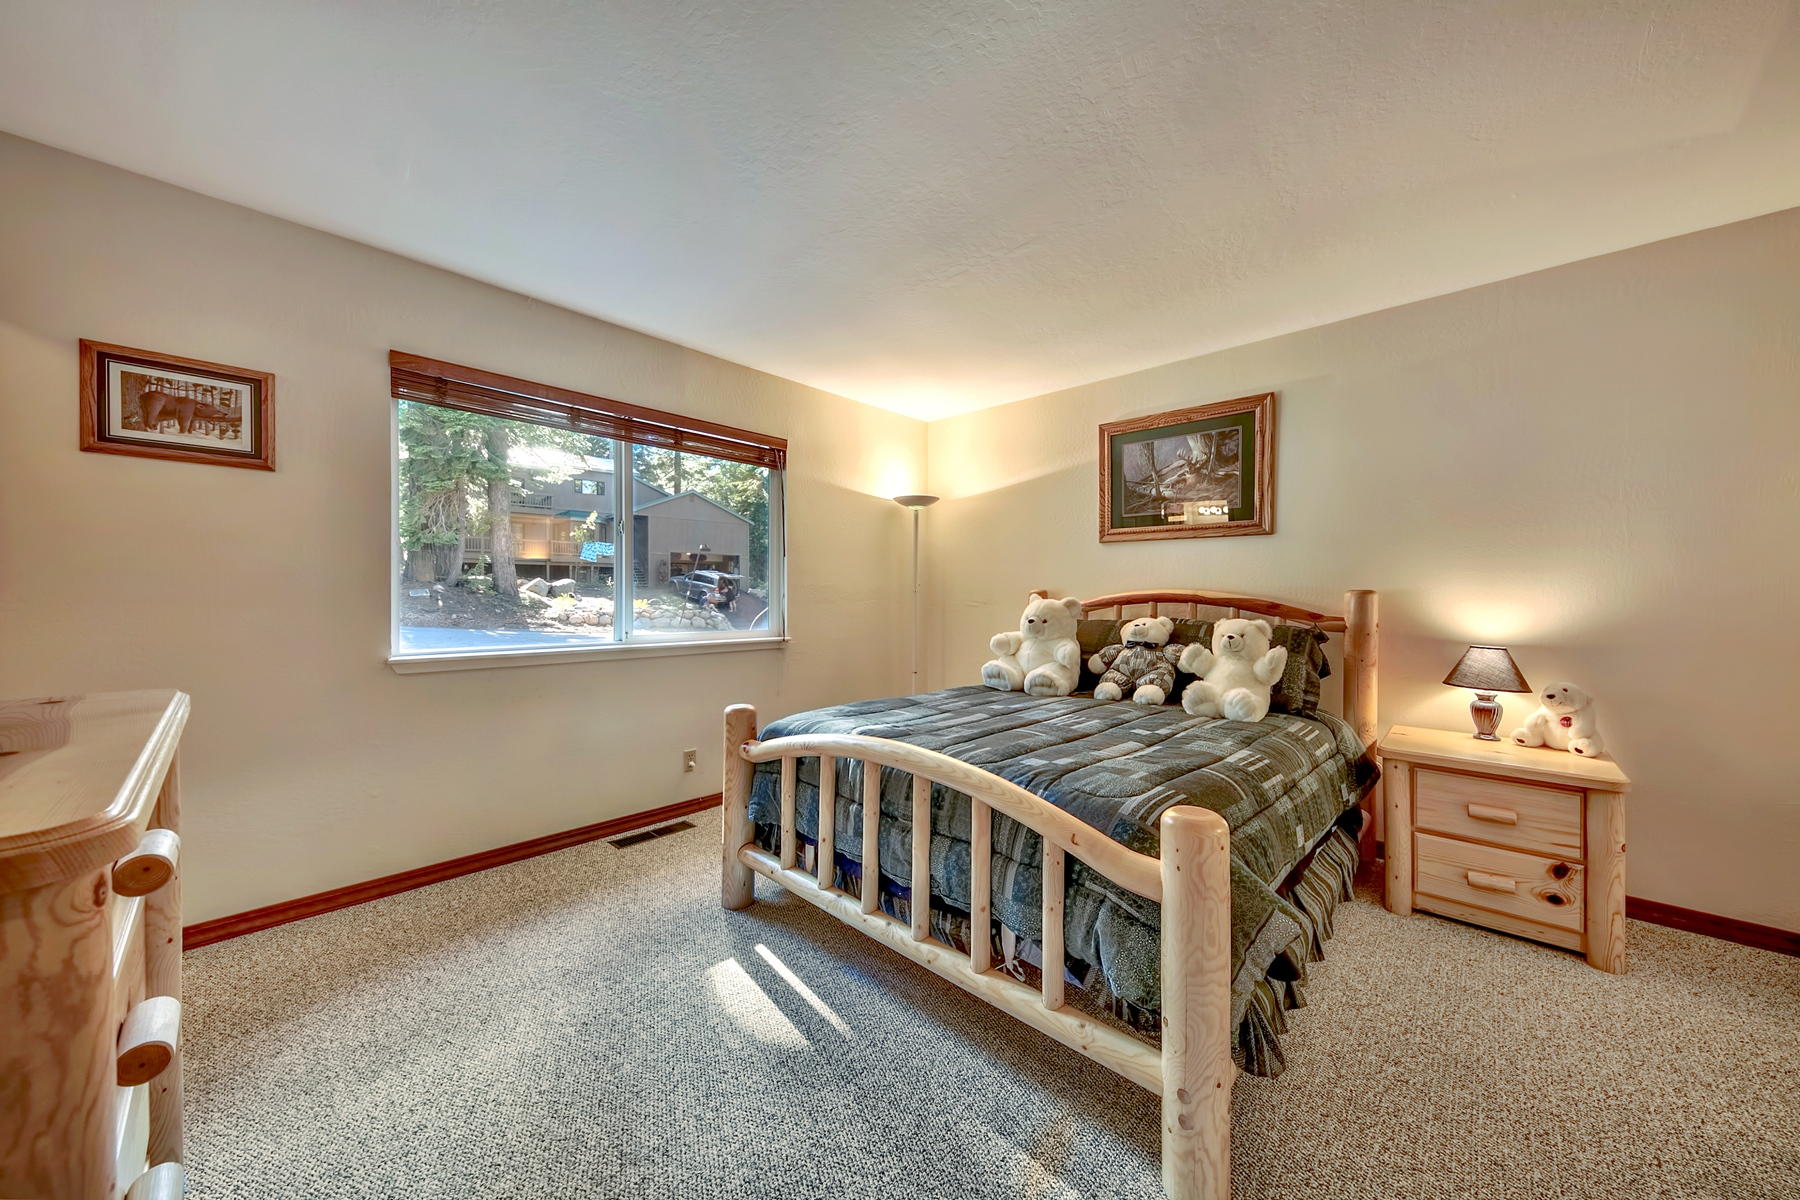 Additional photo for property listing at 1383 Kings Vista Court, Tahoe Vista, CA 1383 Kings Vista Court Tahoe Vista, California 96148 United States